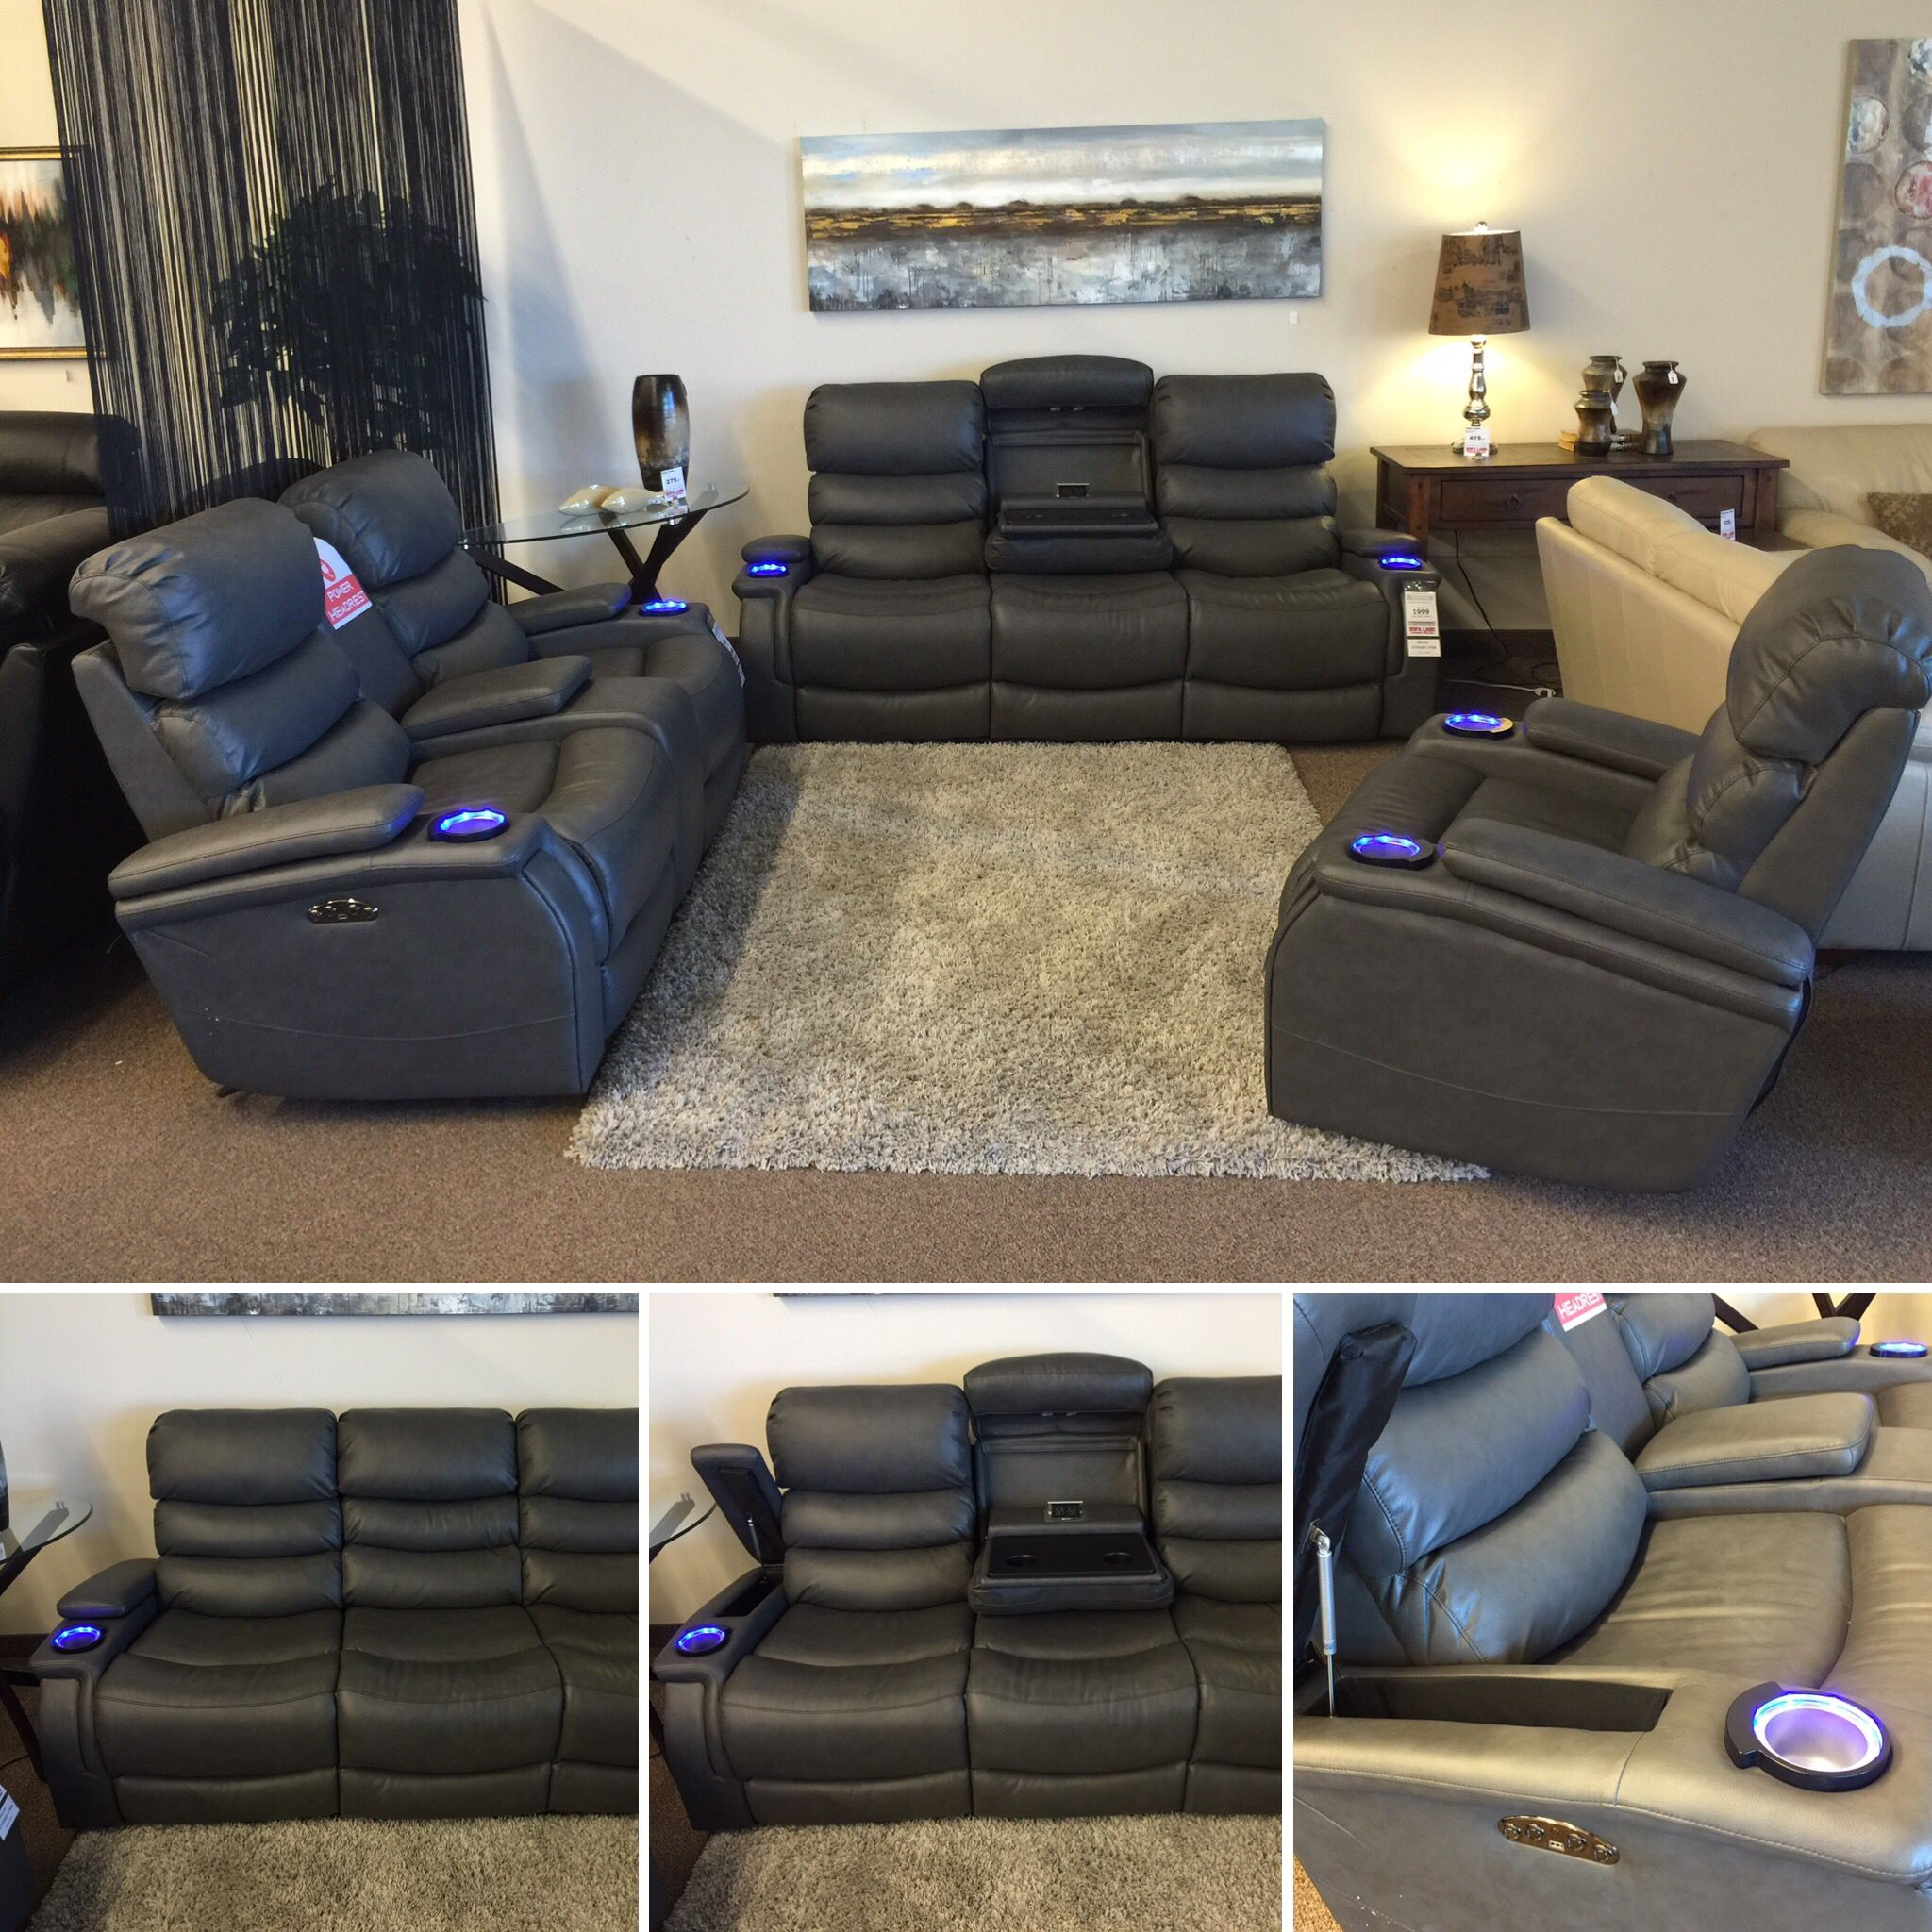 This sofa is so awesome Power recline power adjustable headrests